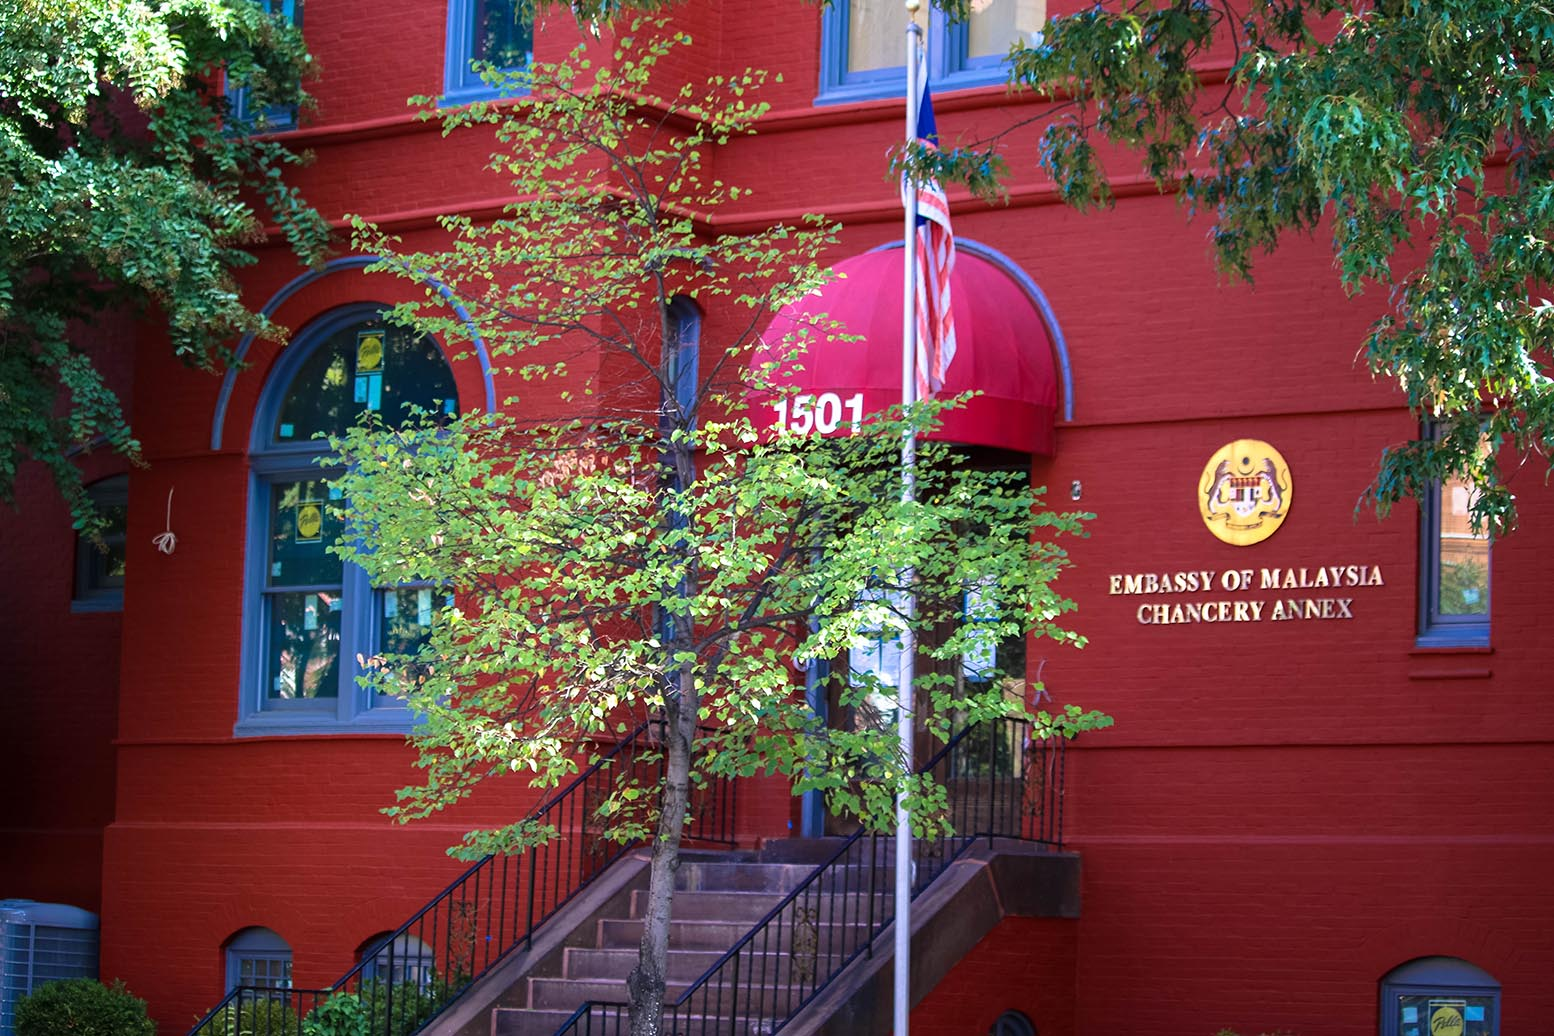 Malaysia embassy in Dupont Circle, Washington, D.C.